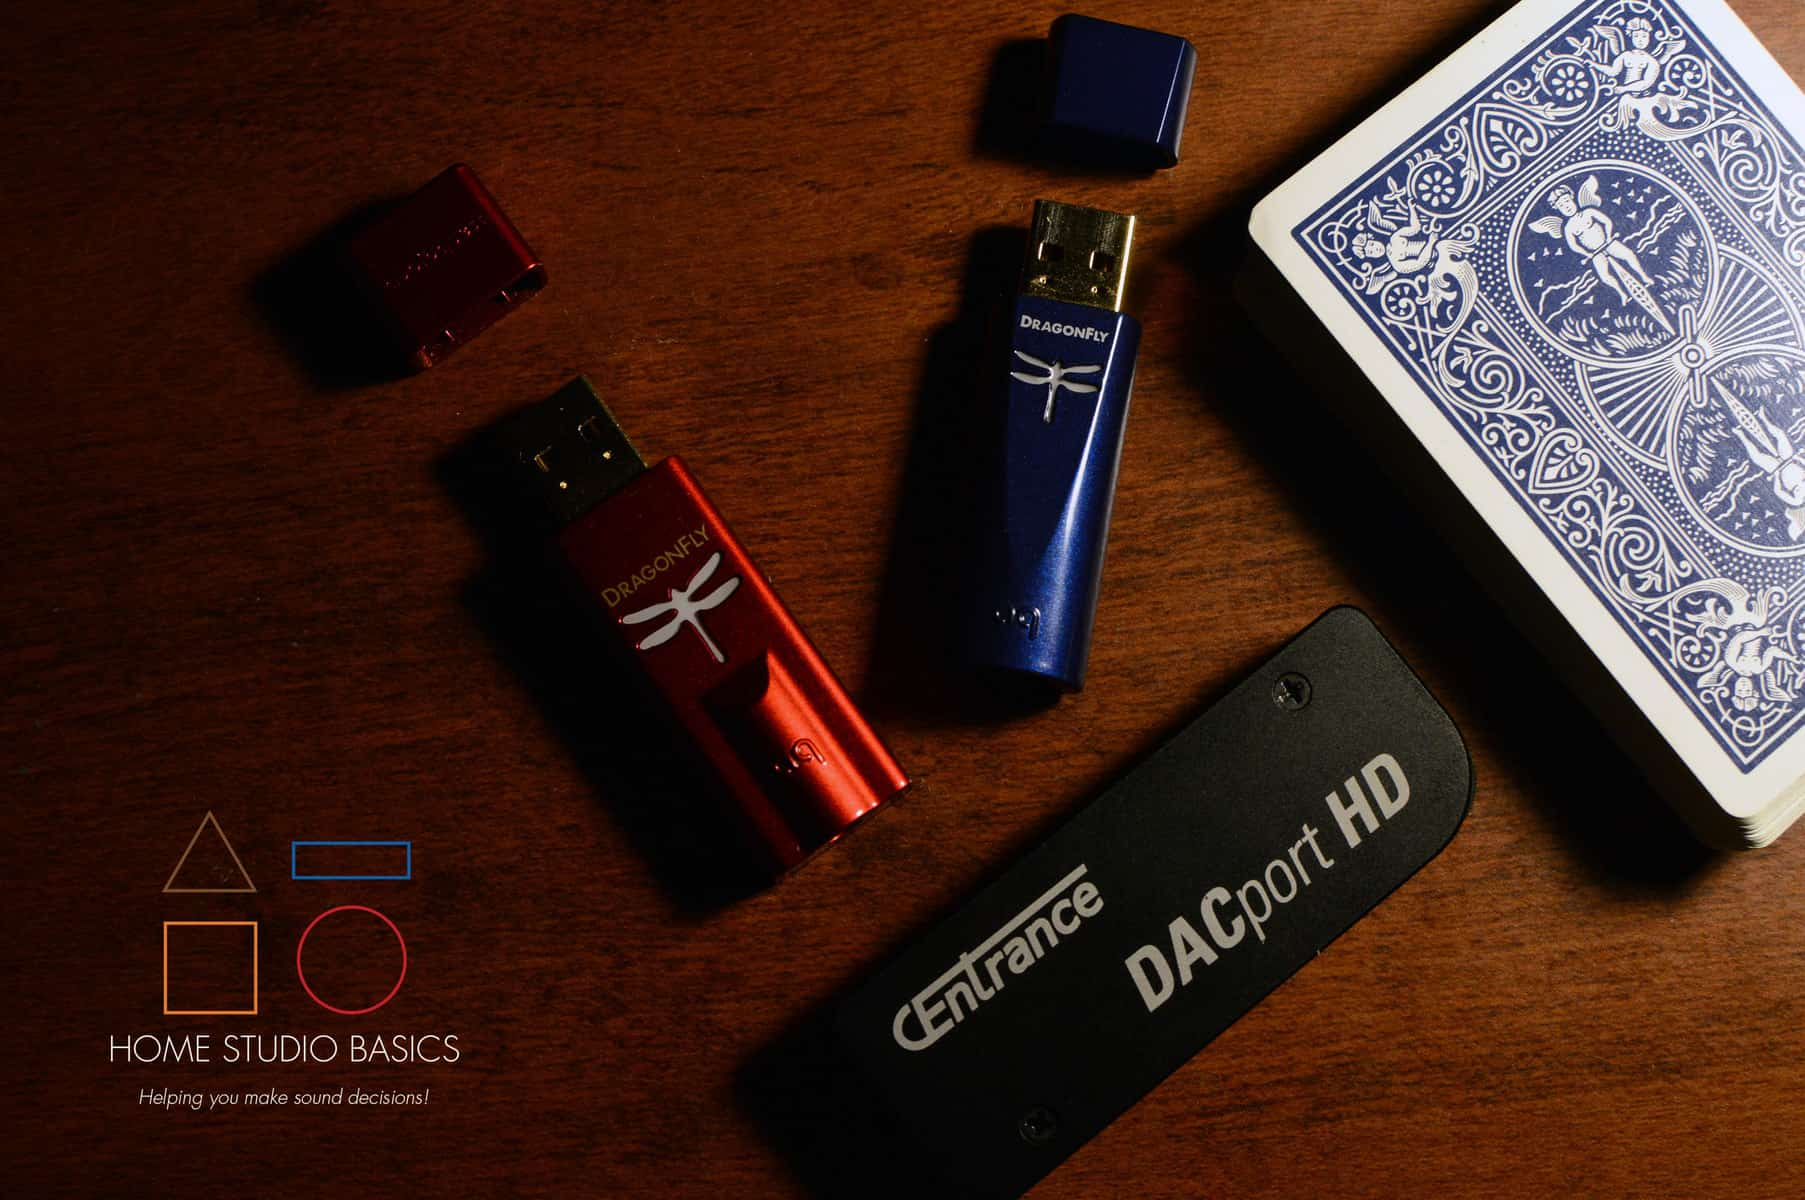 AudioQuest DragonFly Red vs. Cobalt vs. CEntrace DACport HD